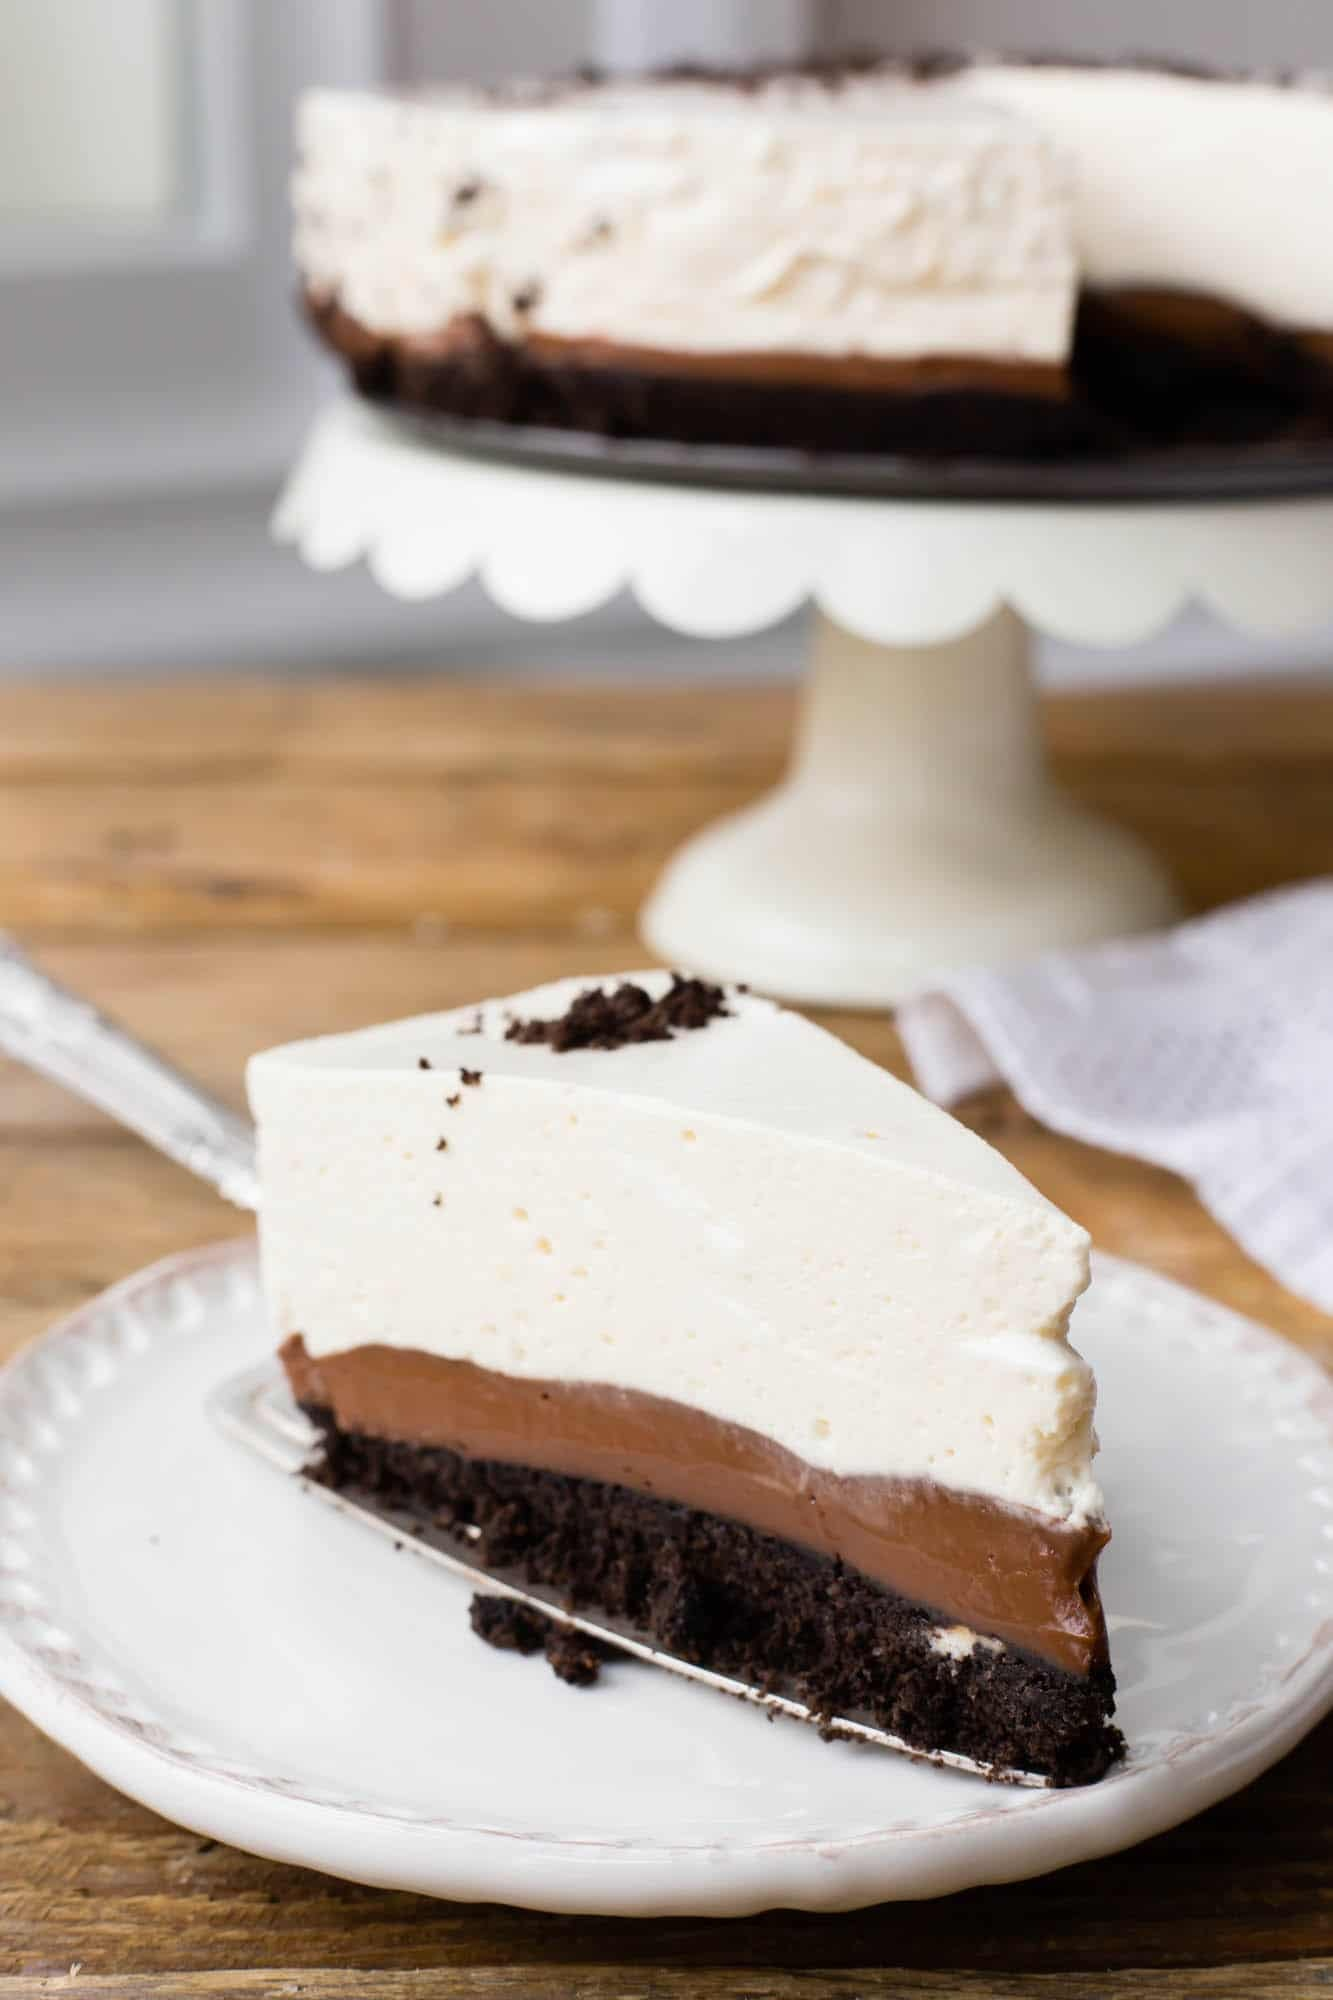 Thermomix No-Bake Oreo Pie